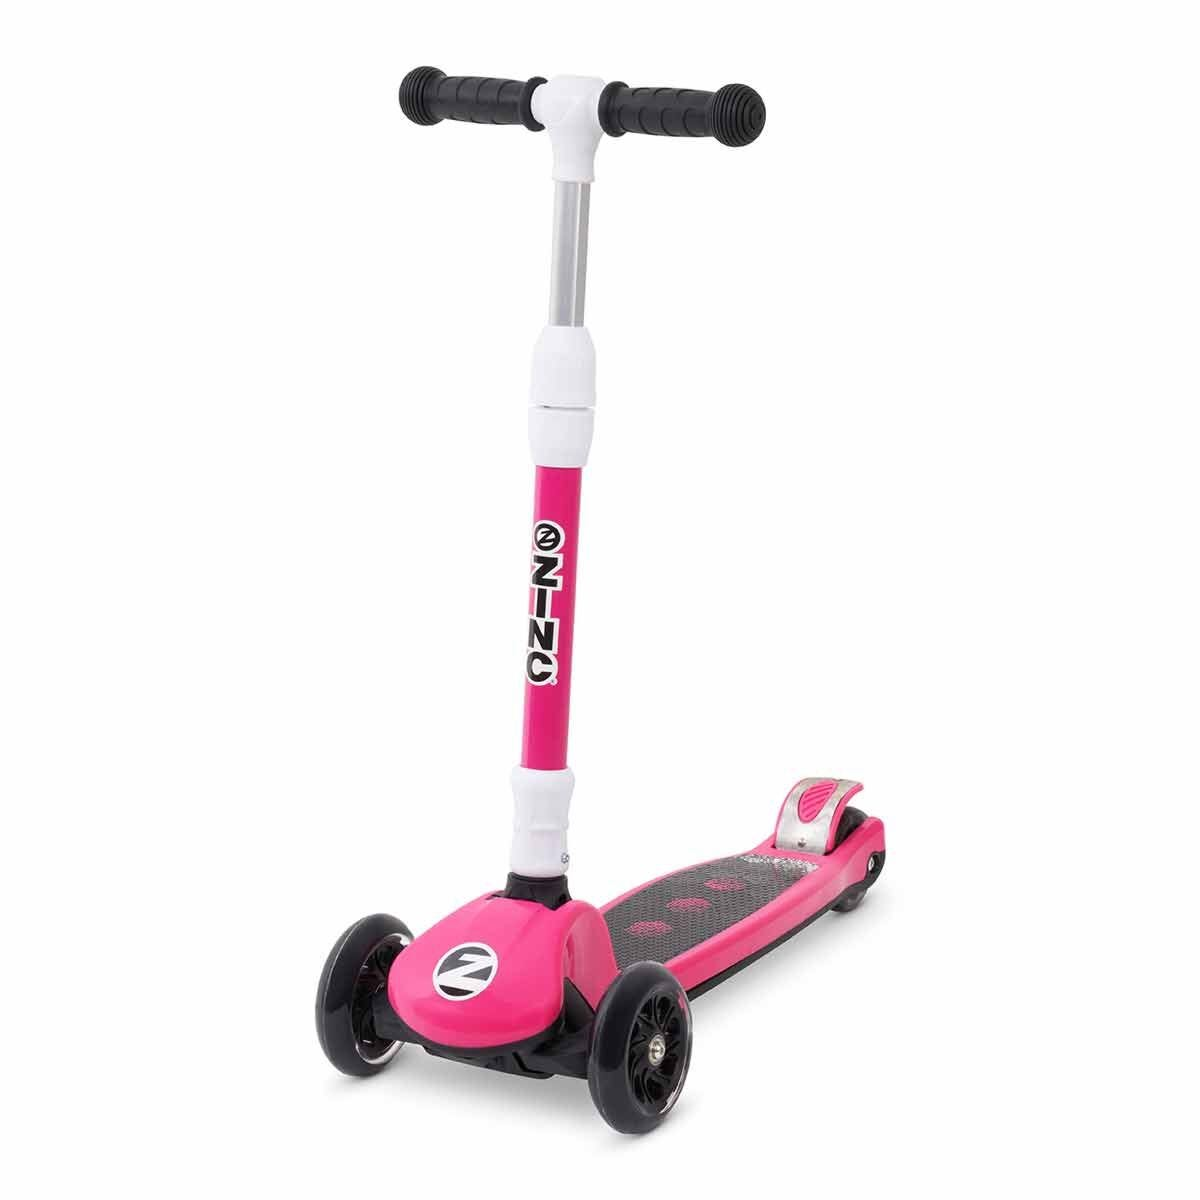 Zinc T Motion Tri Scooter Pink